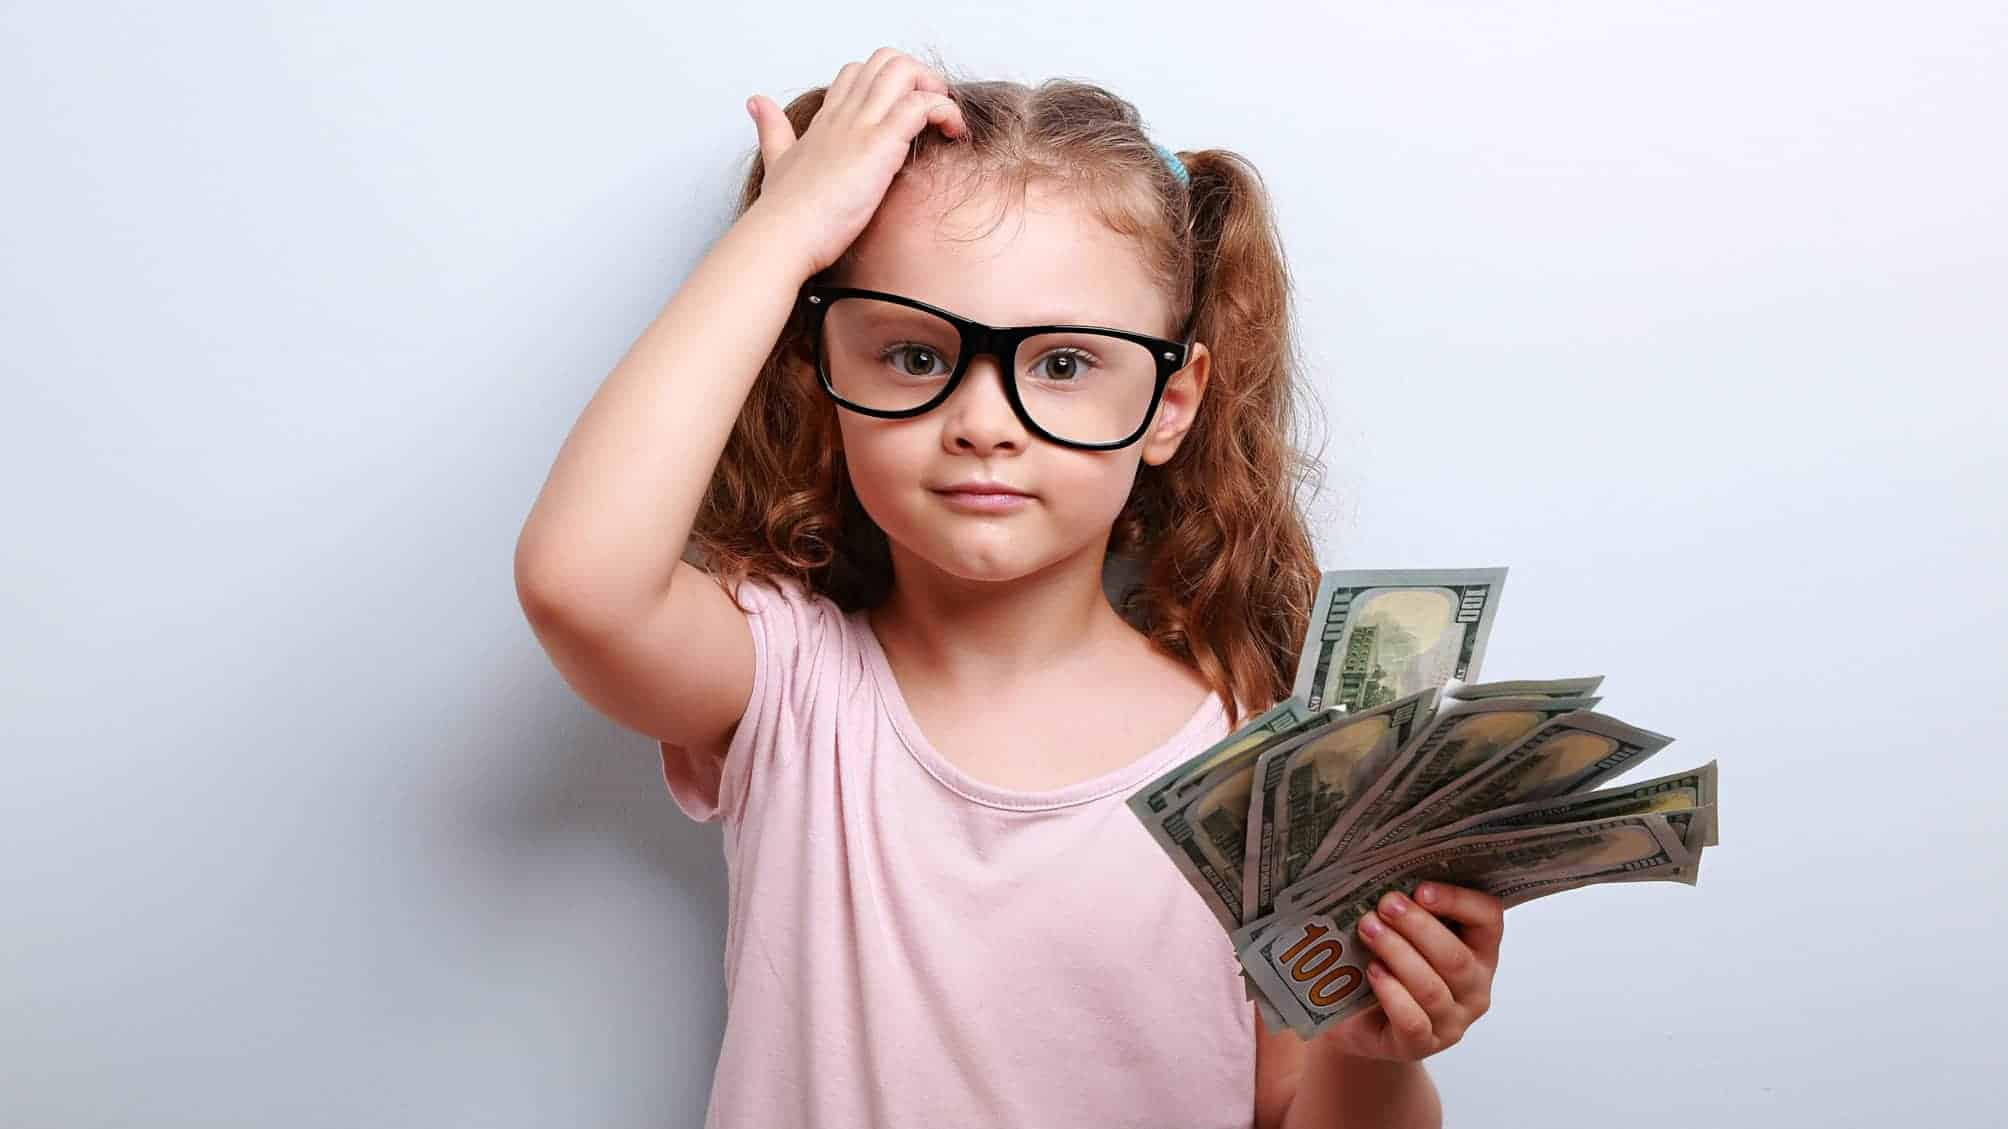 Child holding cash and scratching head